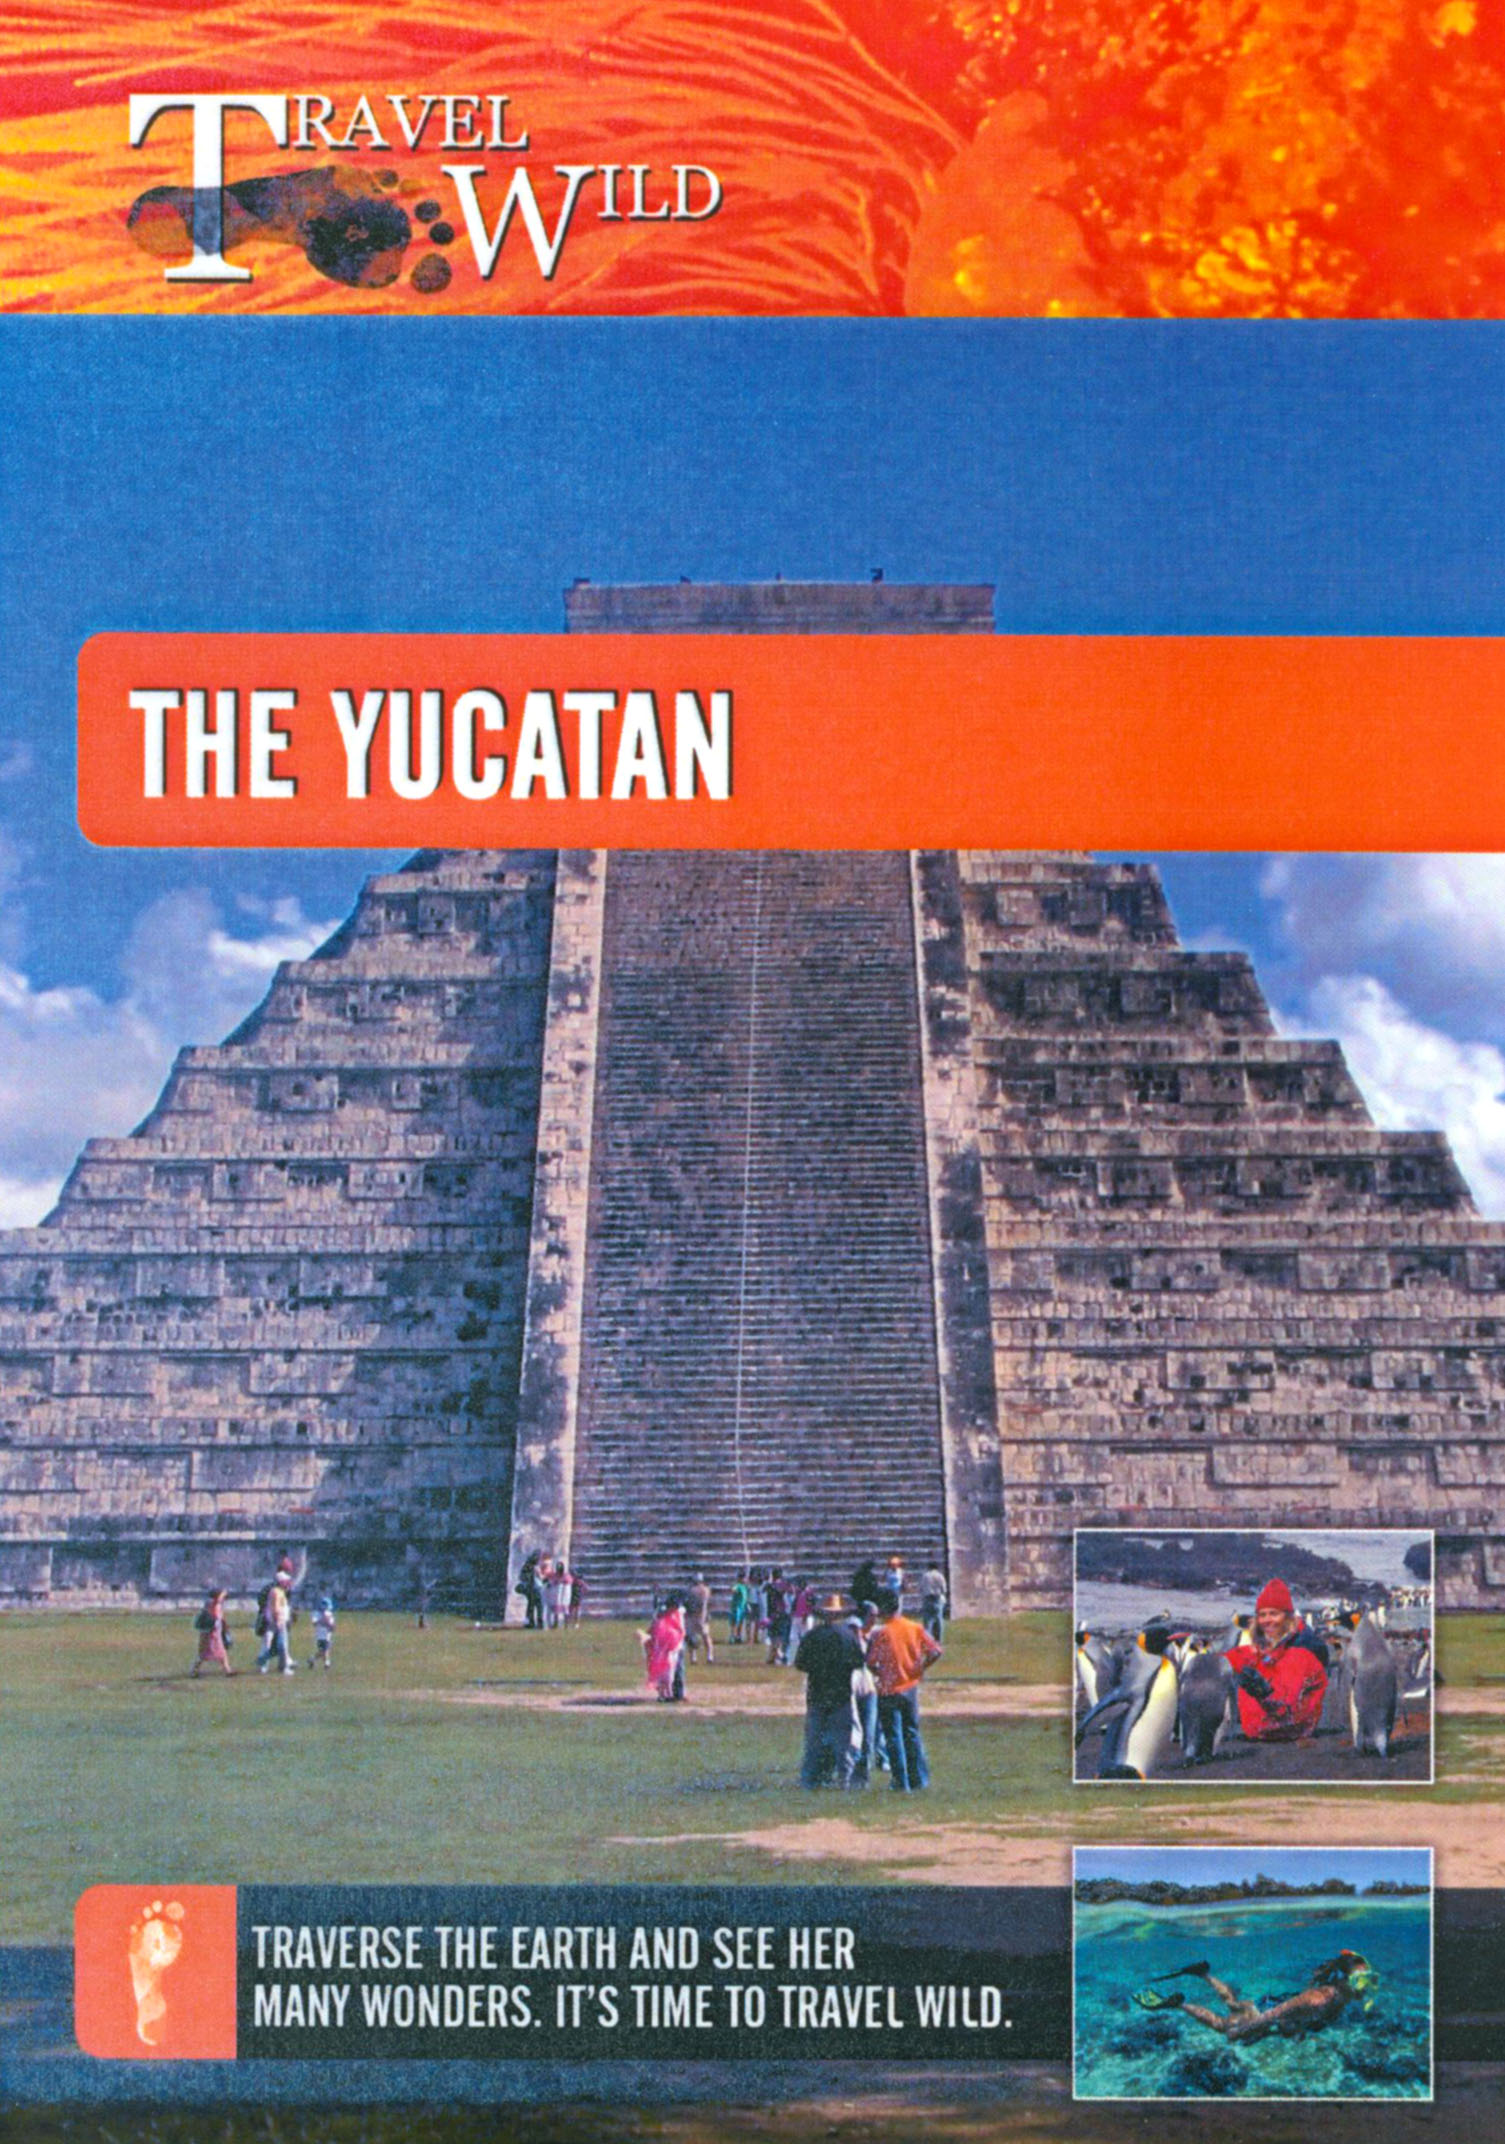 Travel Wild: The Yucatan